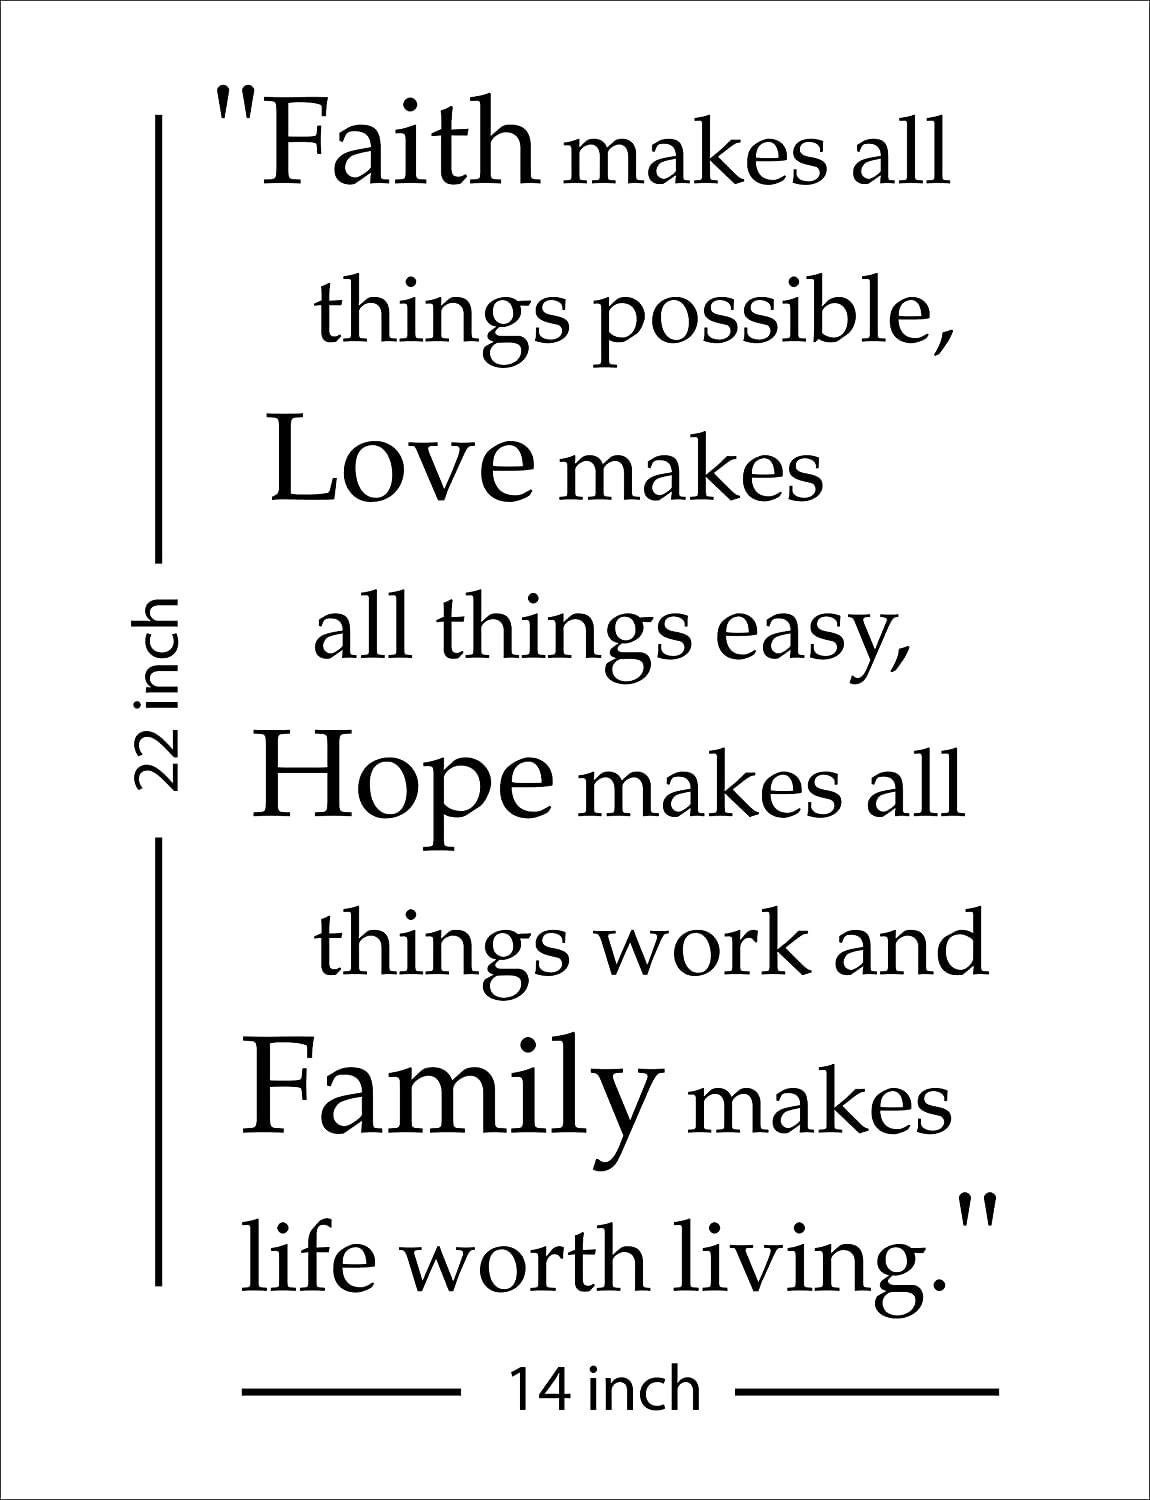 Fabulous Decor Home Decor Faith Makes All Things Possible, Love Makes All Things Easy, Hope Makes All Things Work and Family Makes Life, Be Strong, Do not be Afraid (Faith, Black)